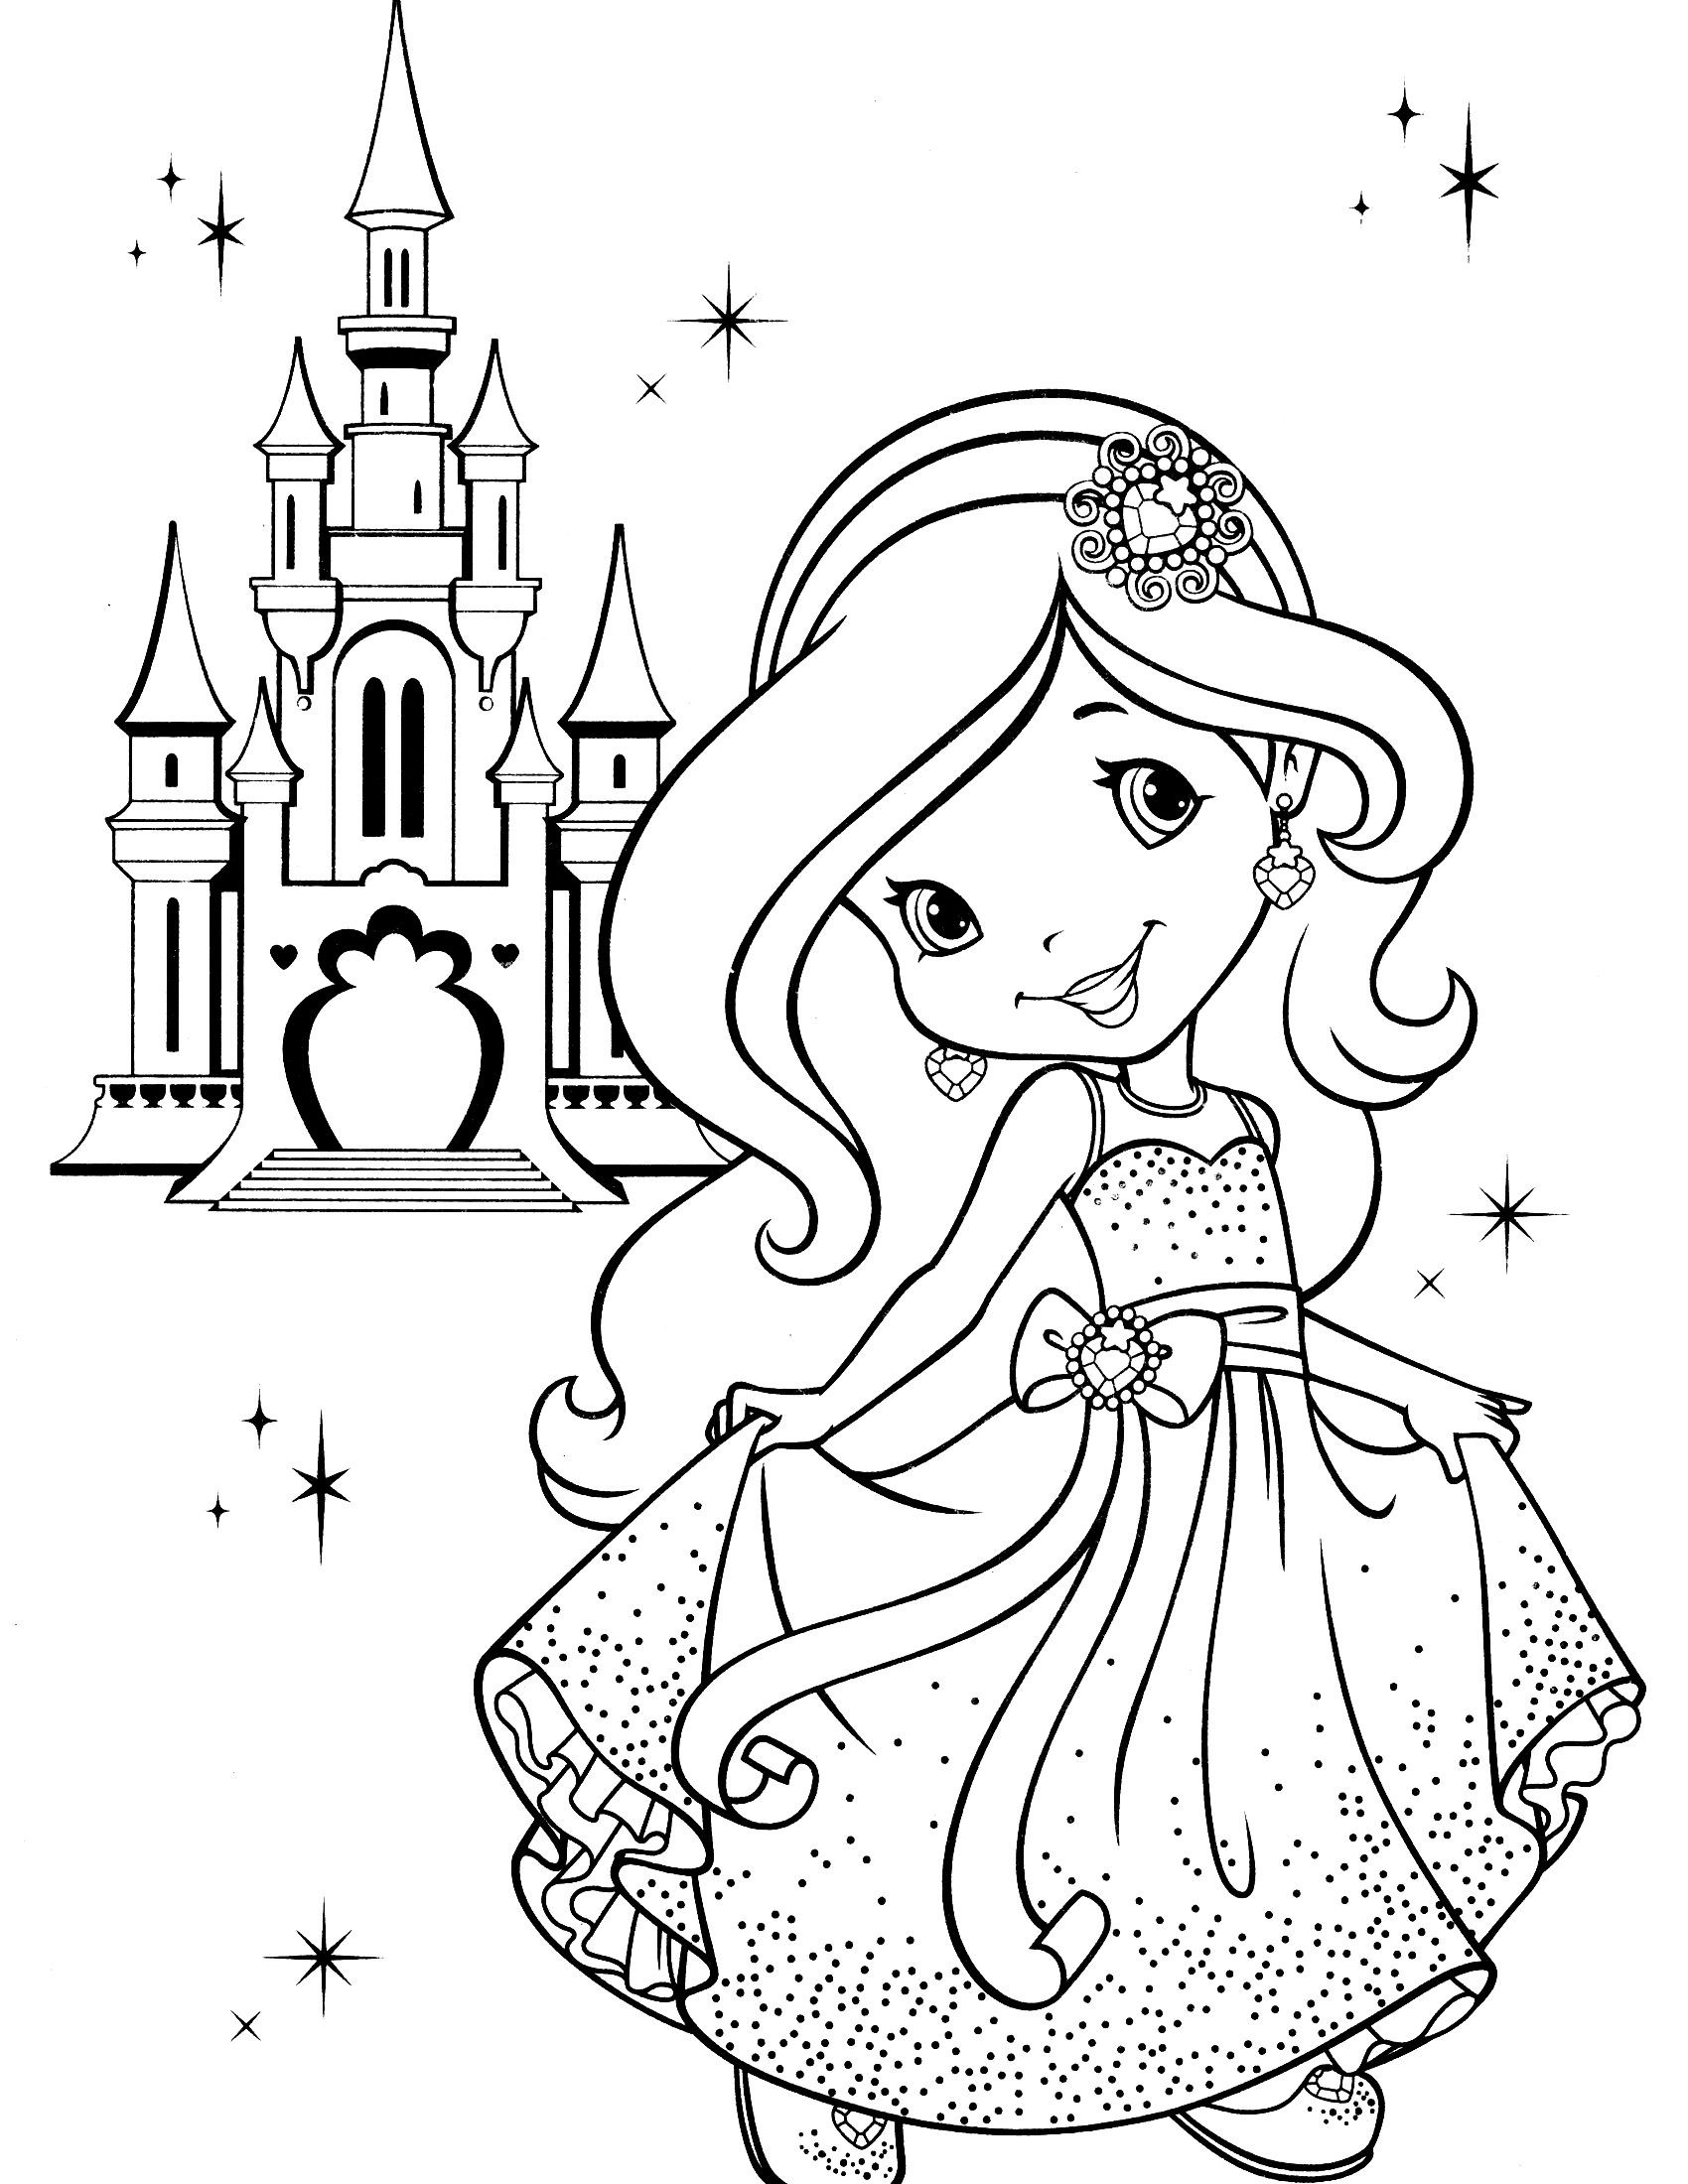 Strawberry Shortcake Coloring Page  Best Strawberry Shortcake Princess Coloring Pages